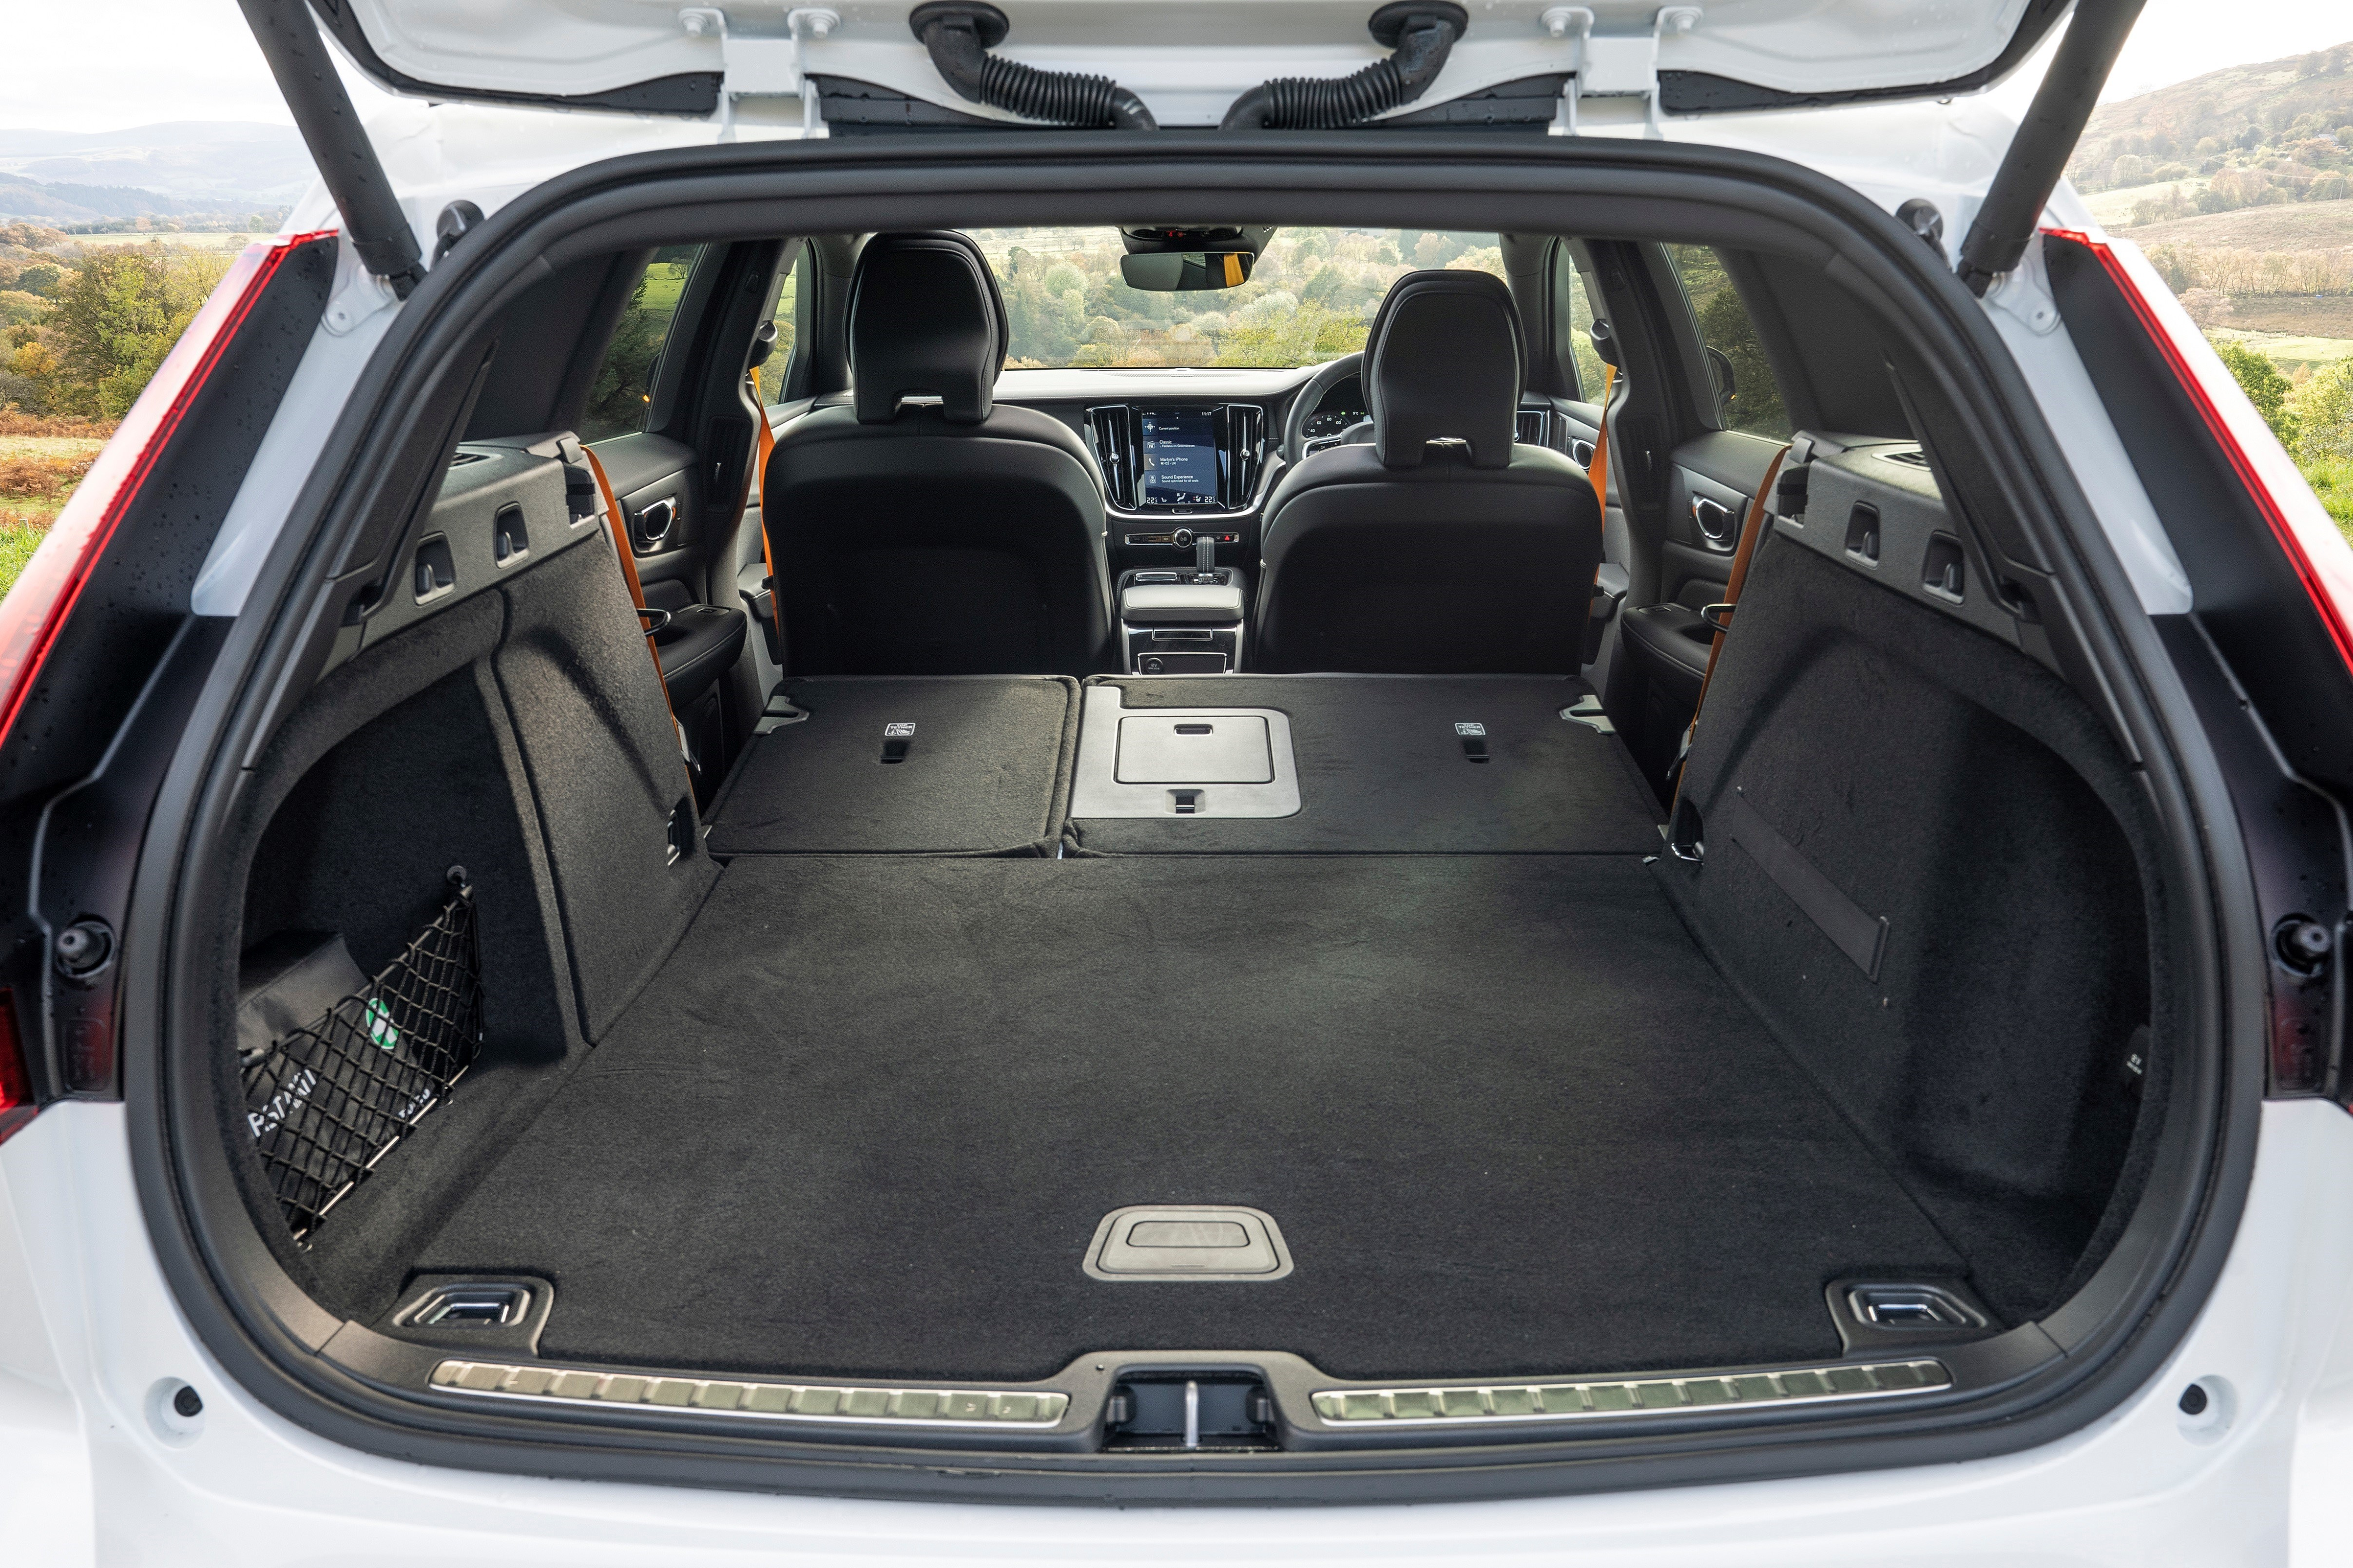 Boot Space in the Volvo